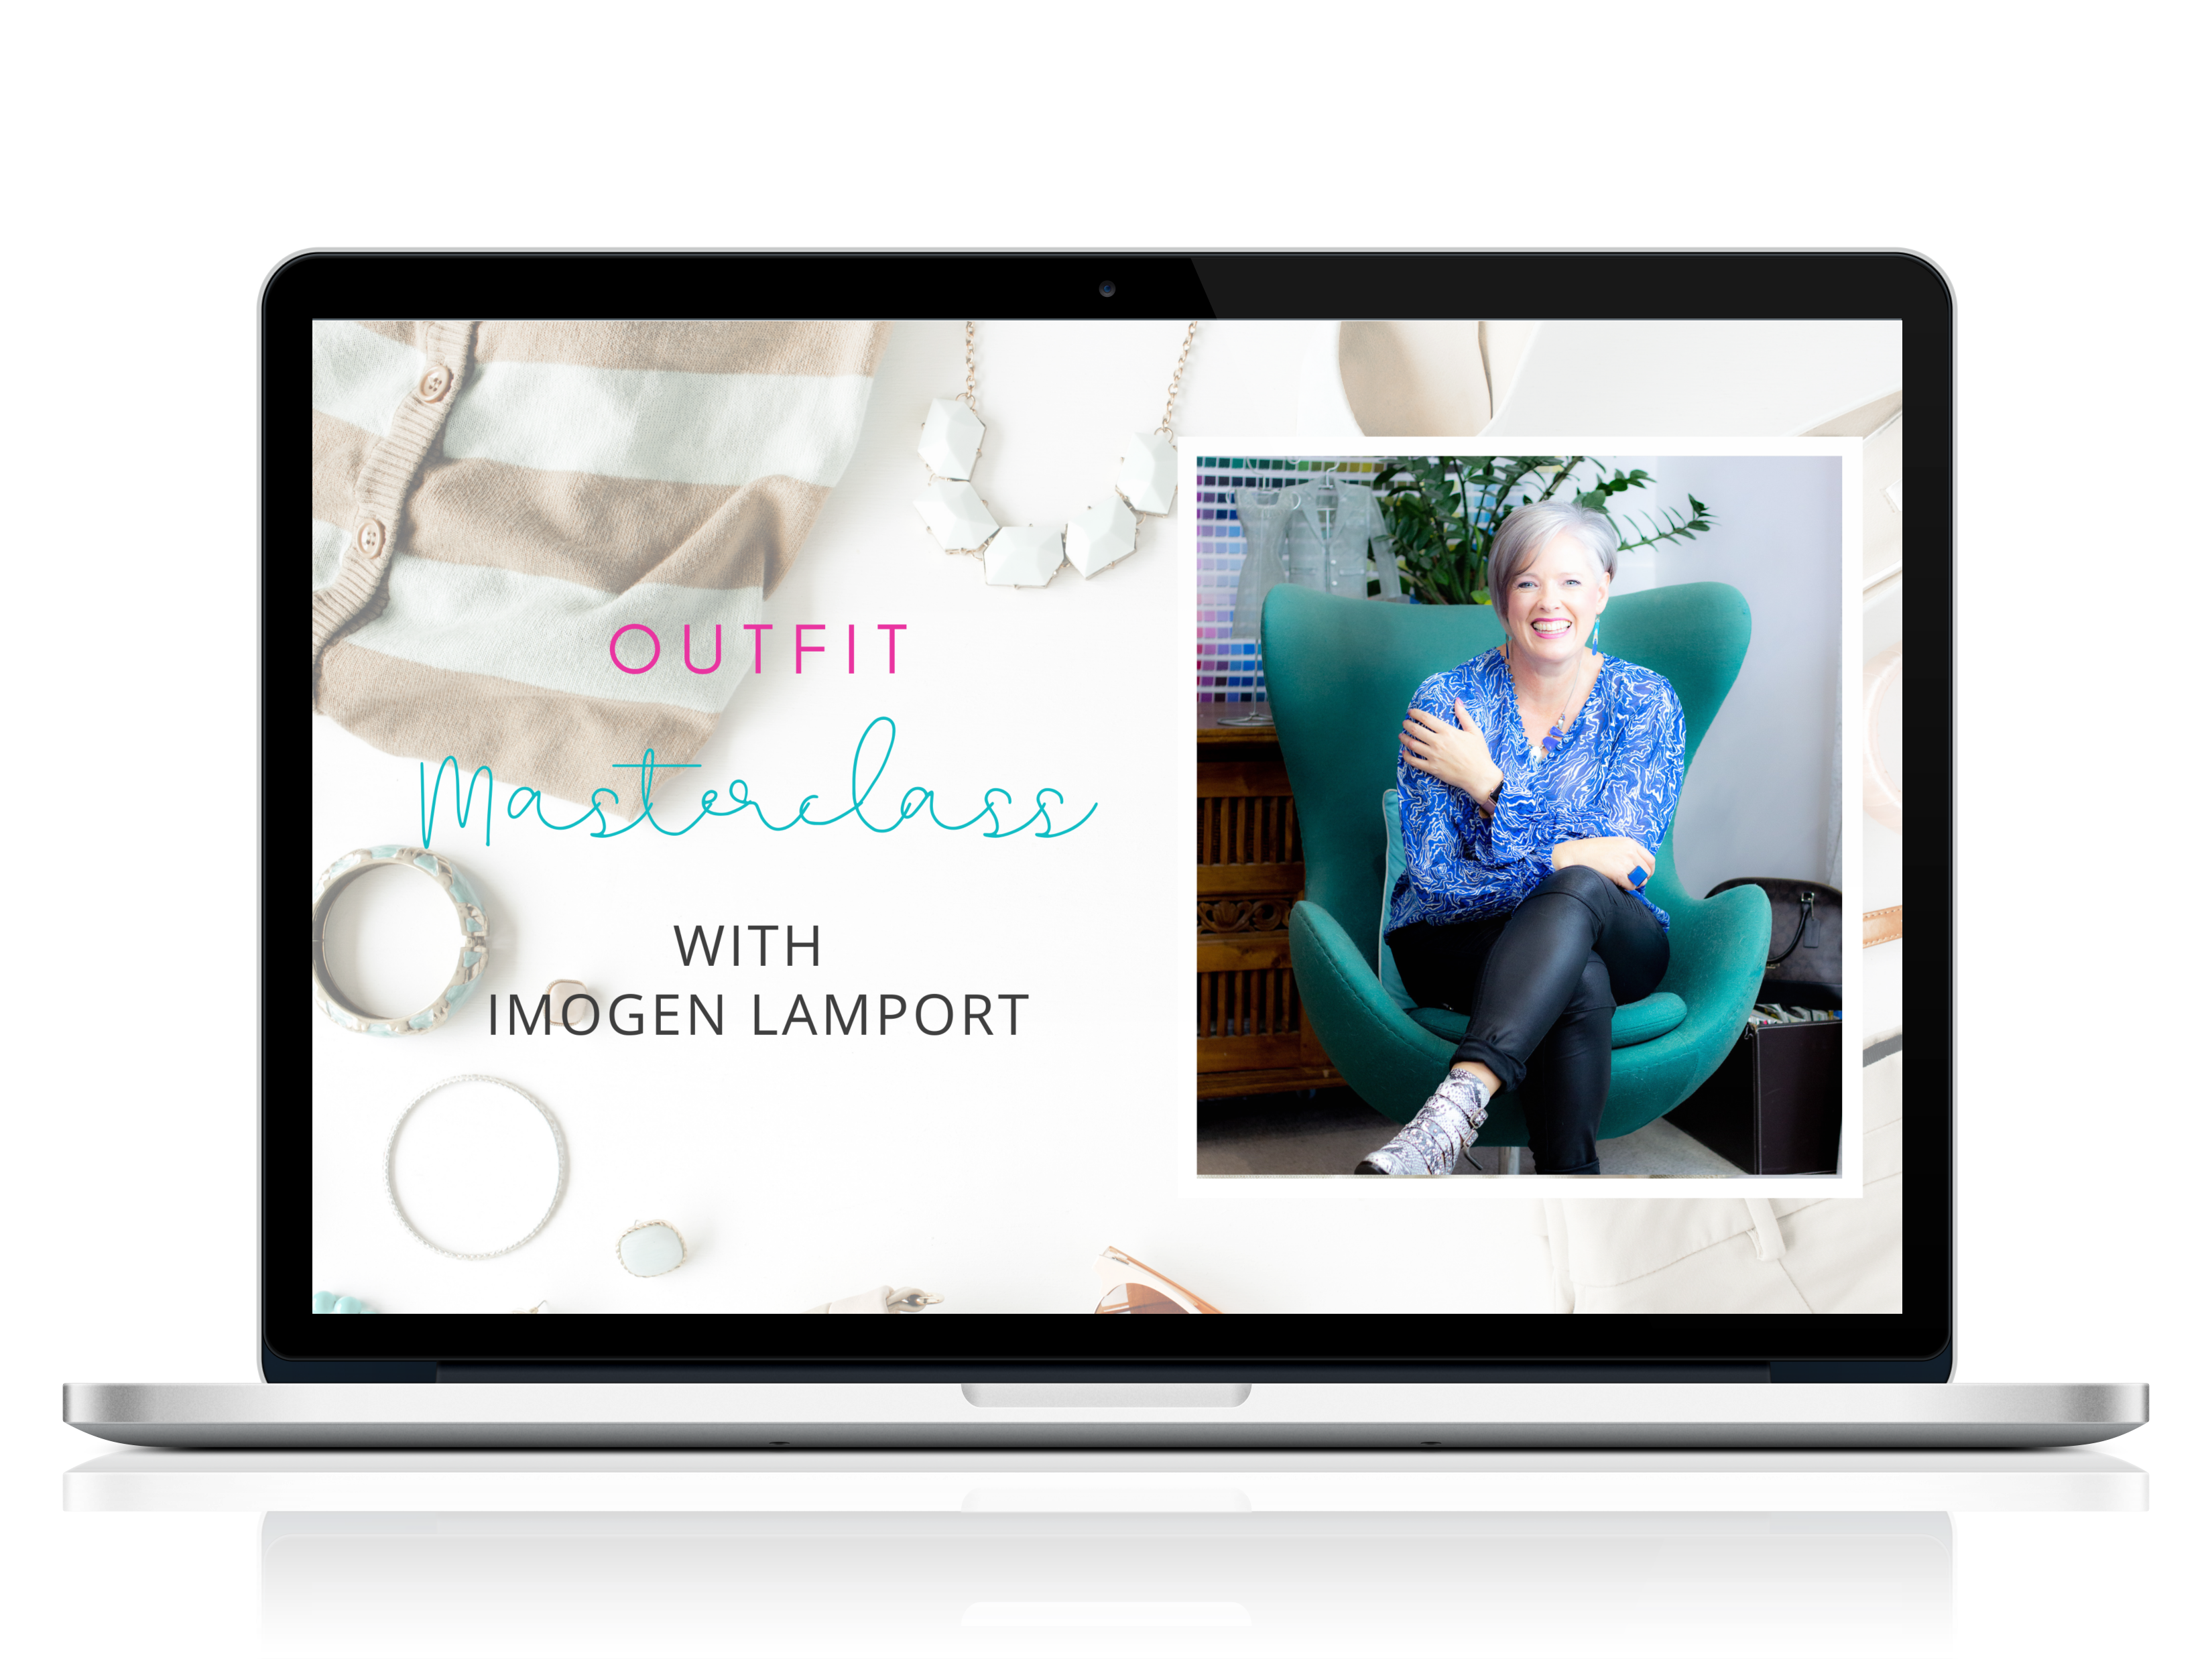 How to create stylish and fabulous outfits in minutes masterclass with imogen lamport